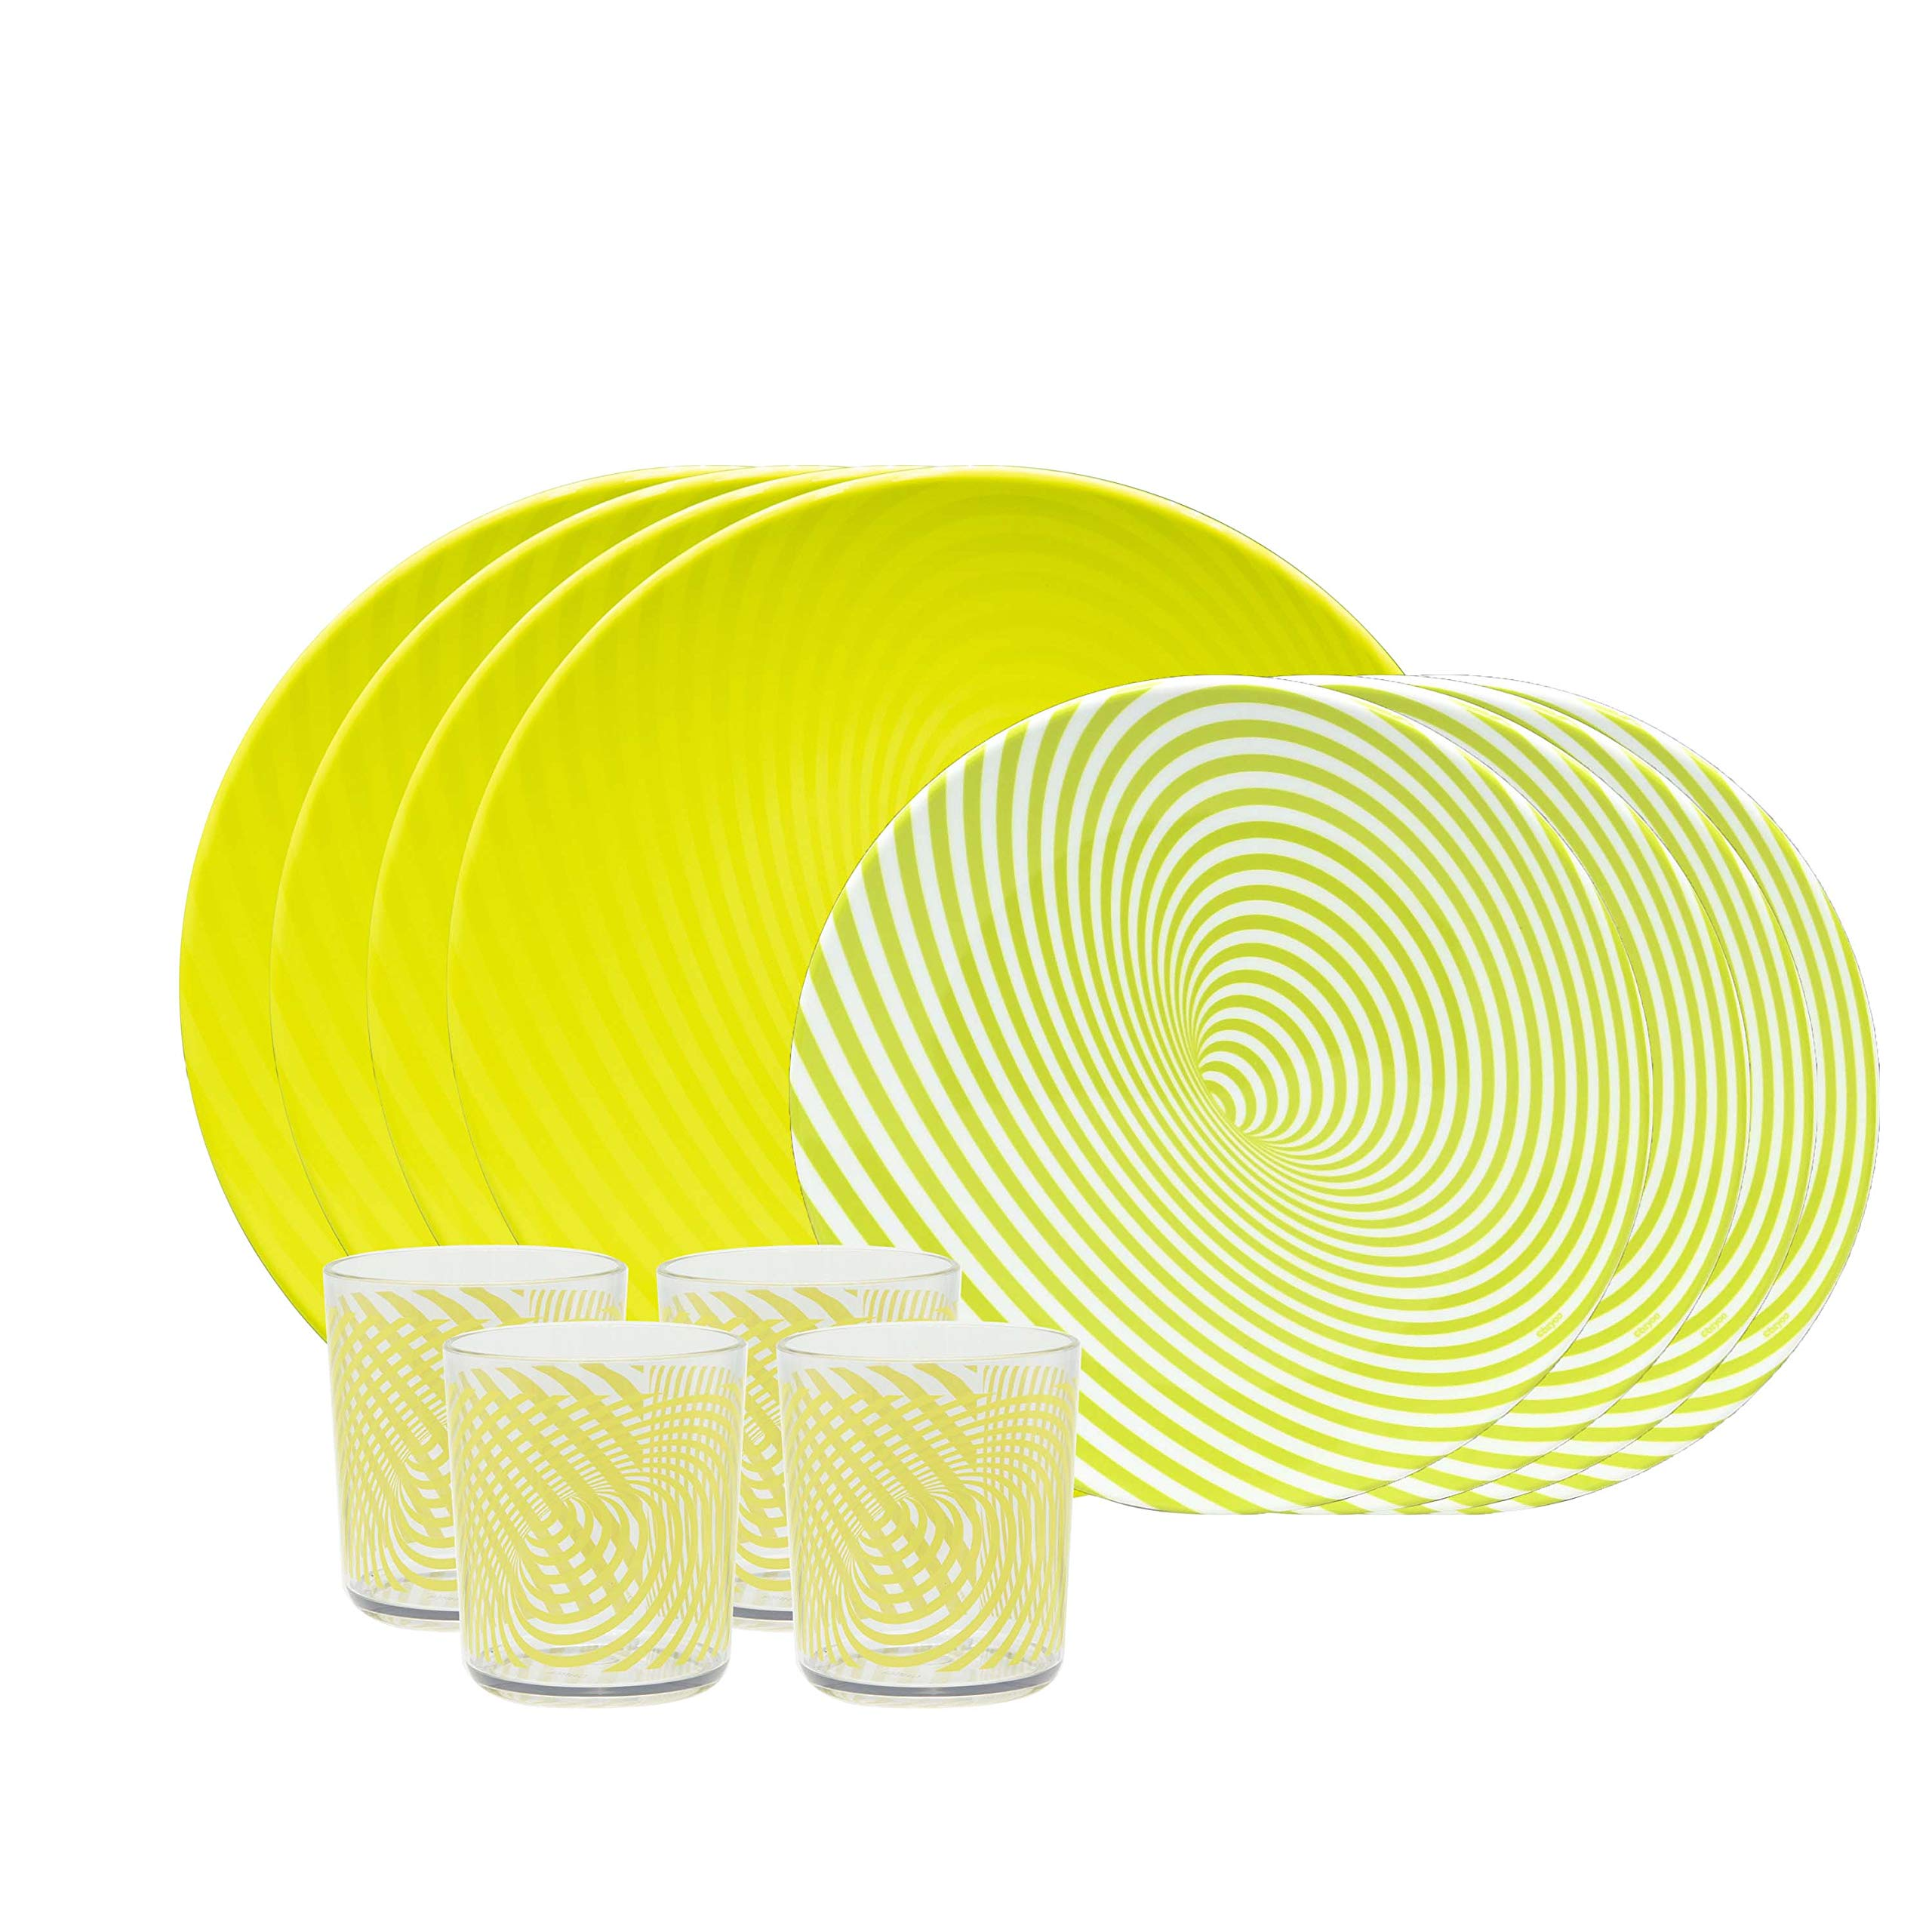 bzyoo BPA-Free Dishwasher Safe 100% Melamine Lightweight Plate & Tumbler Set Best for Indoor and Outdoor Party Environmental Friendly (12 PCS Dinnerware set, Service for 4, Hypno Green)